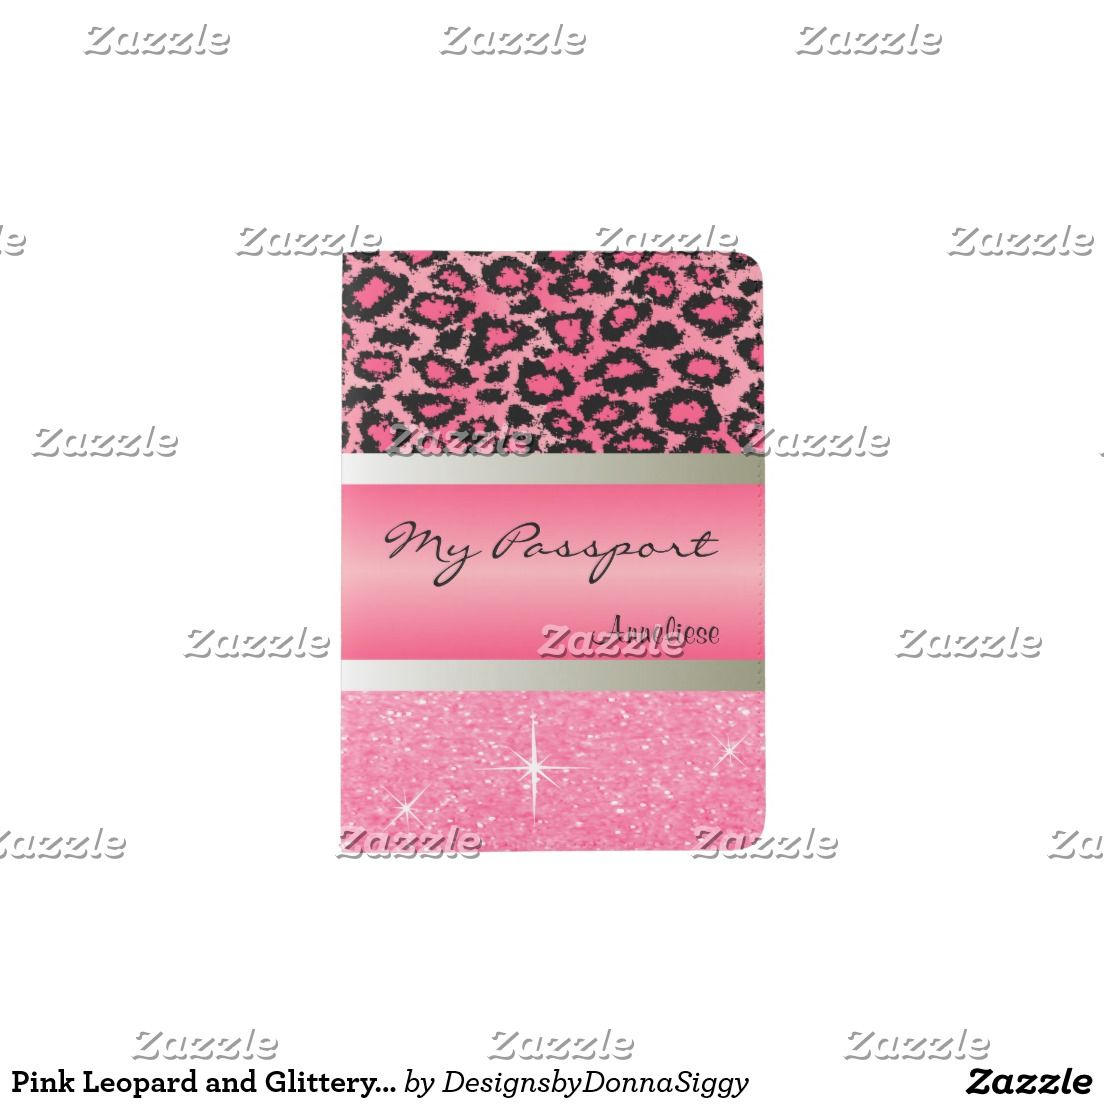 #Sold 2 | #Pink #Leopard and Glittery Print #Passport #Holders